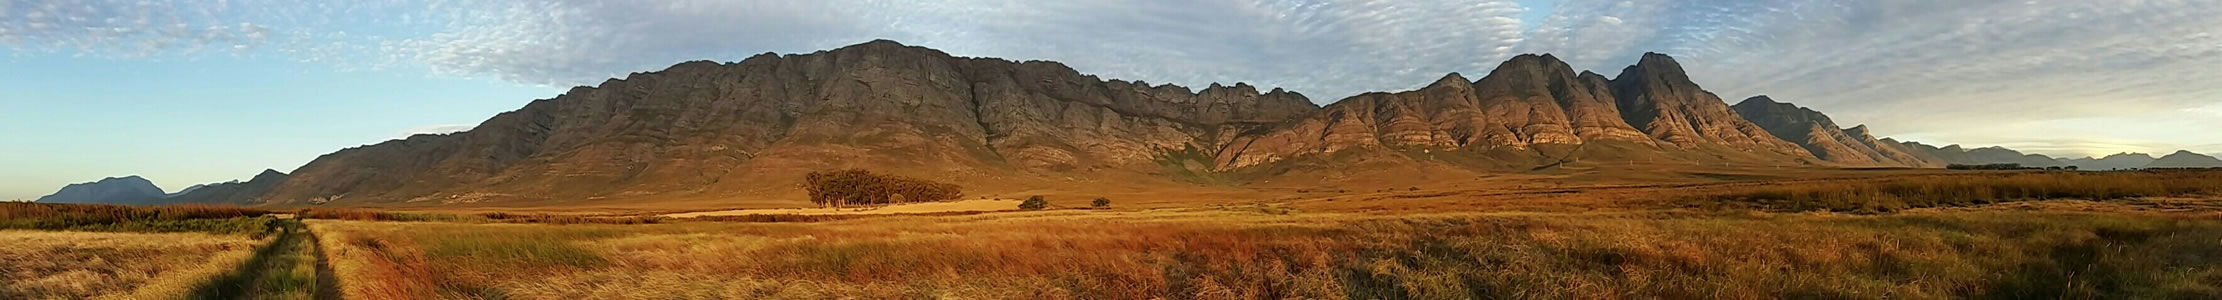 Bartholomeus Fields mountain